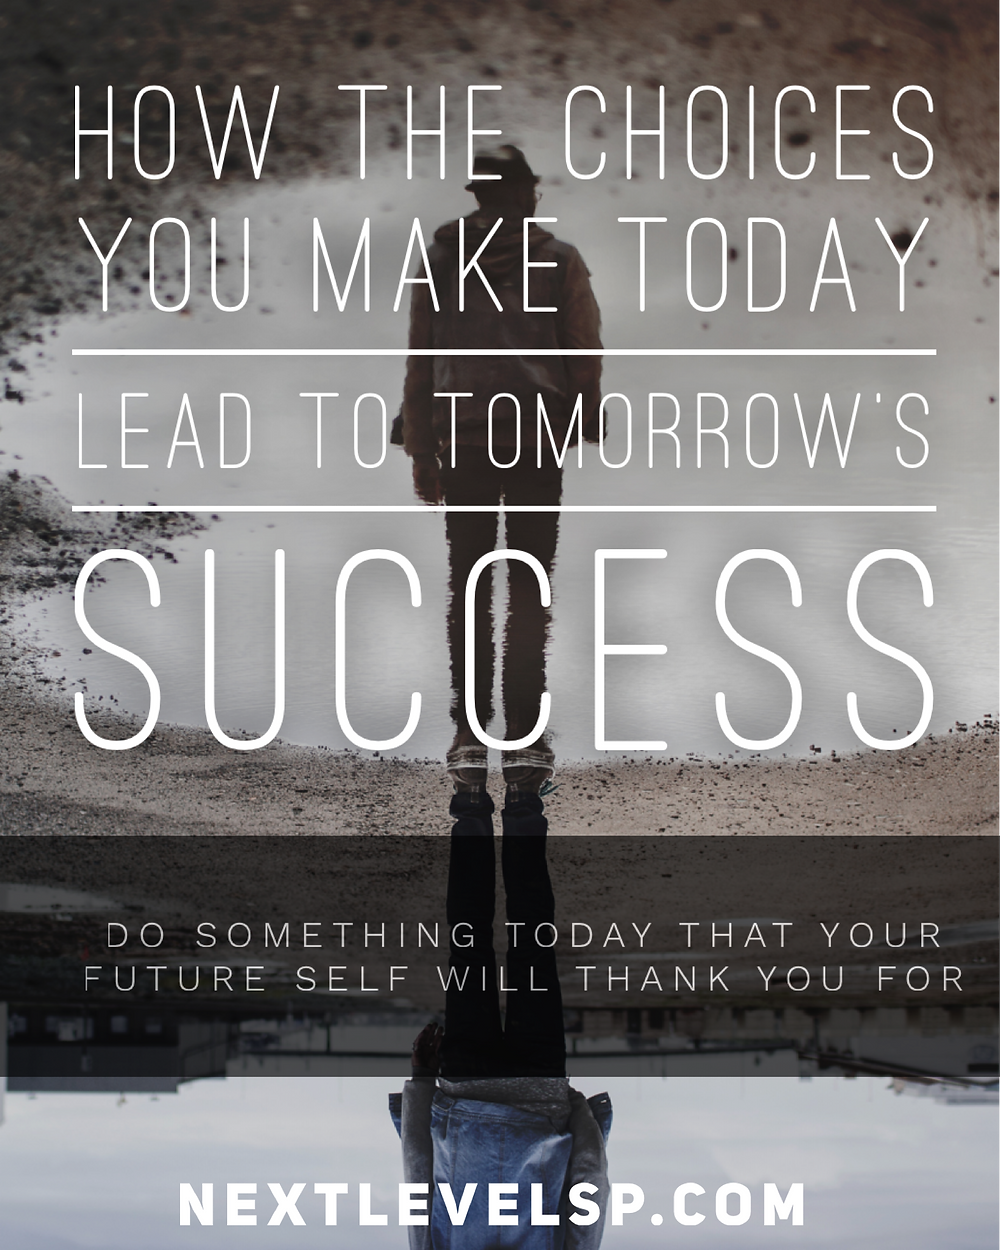 how the choices you make today lead to tomorrows success